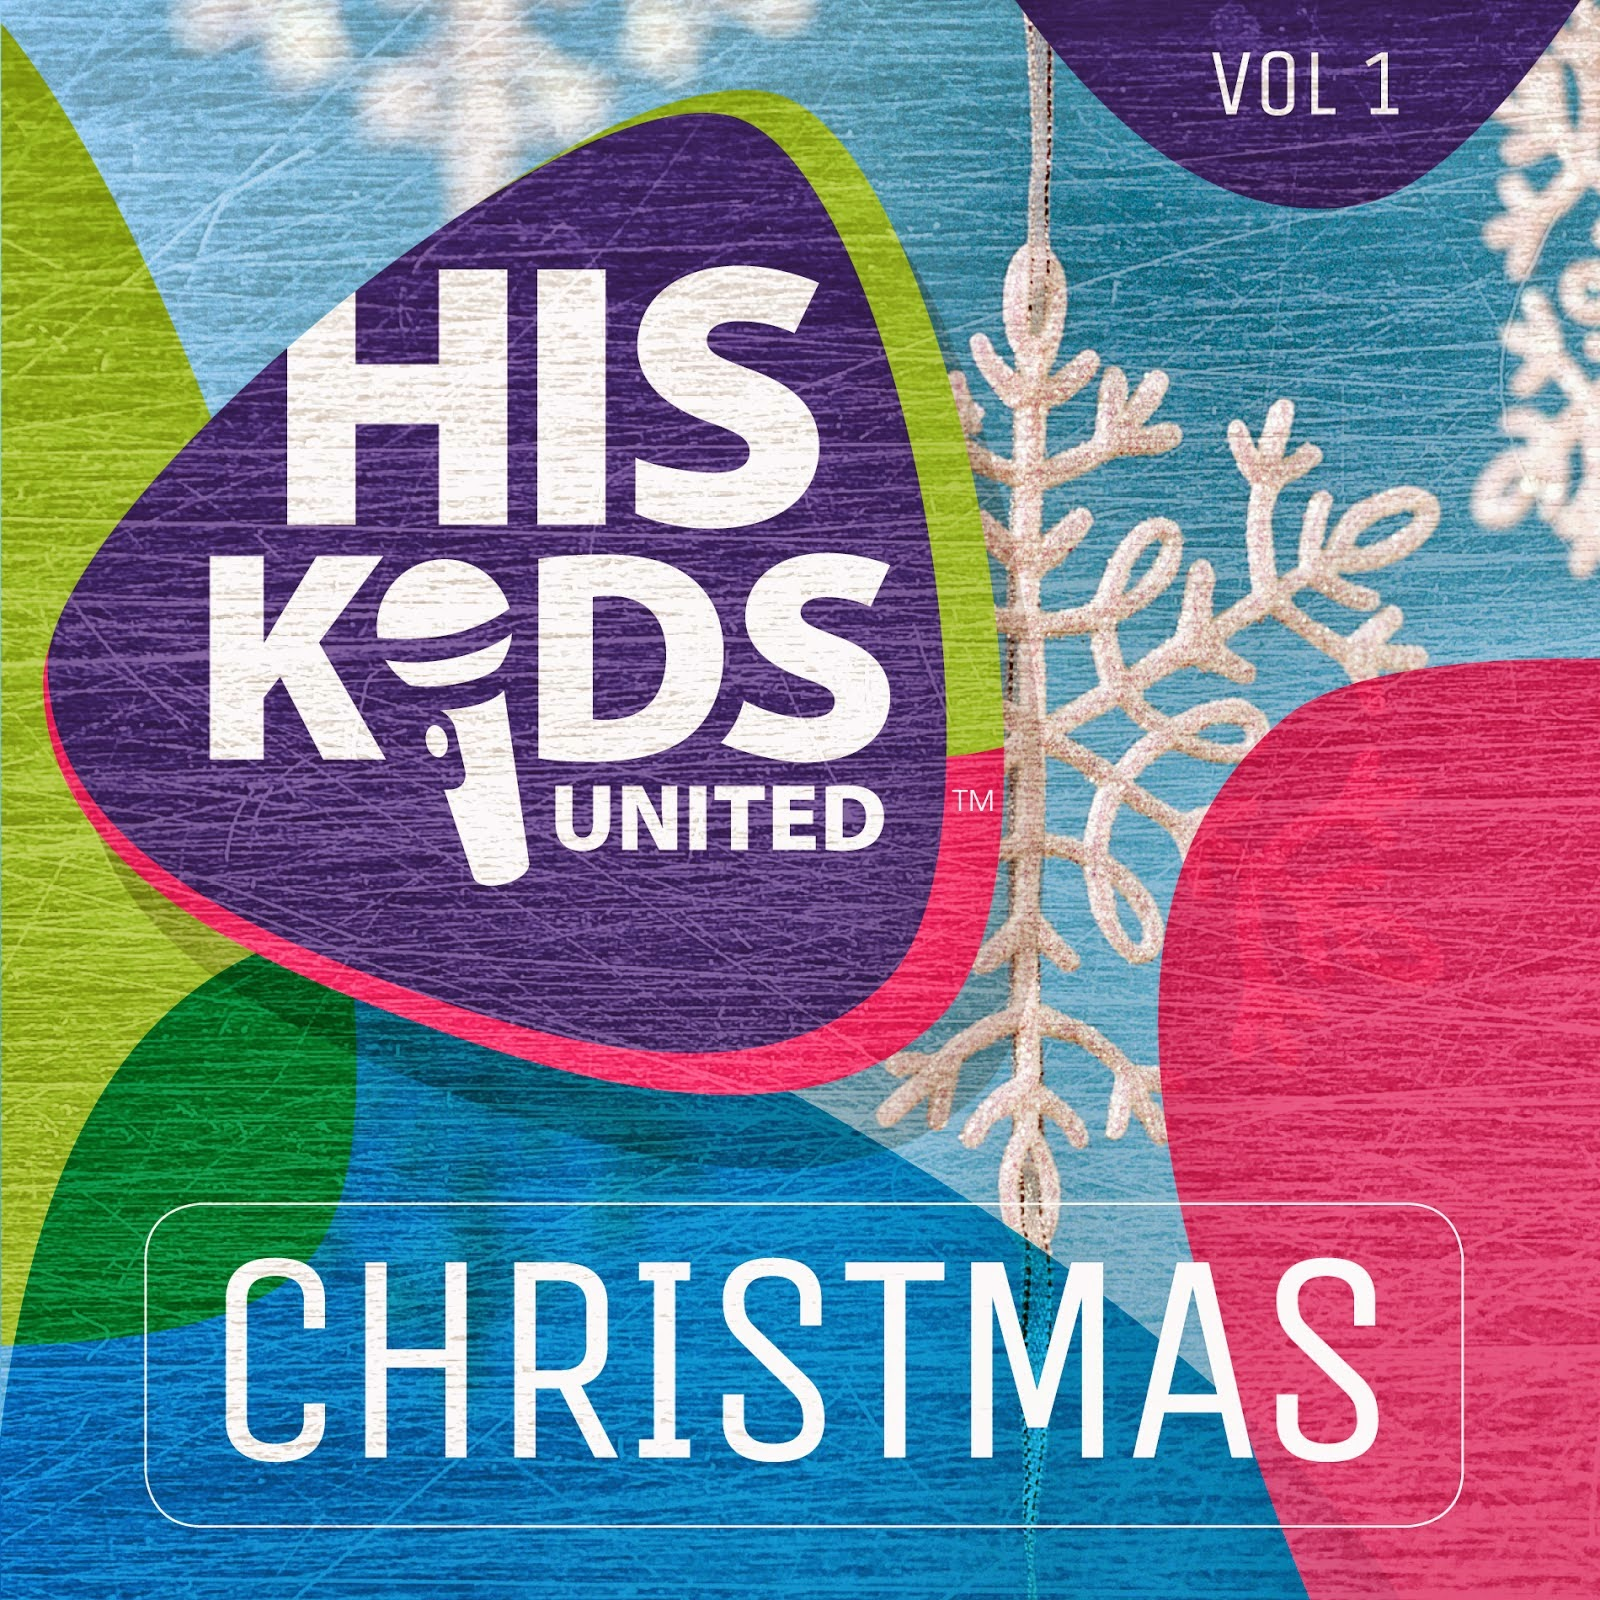 His Kids United - Christmas Vol 1 (Sing-A-Long) 2014 English Christmas Album Download